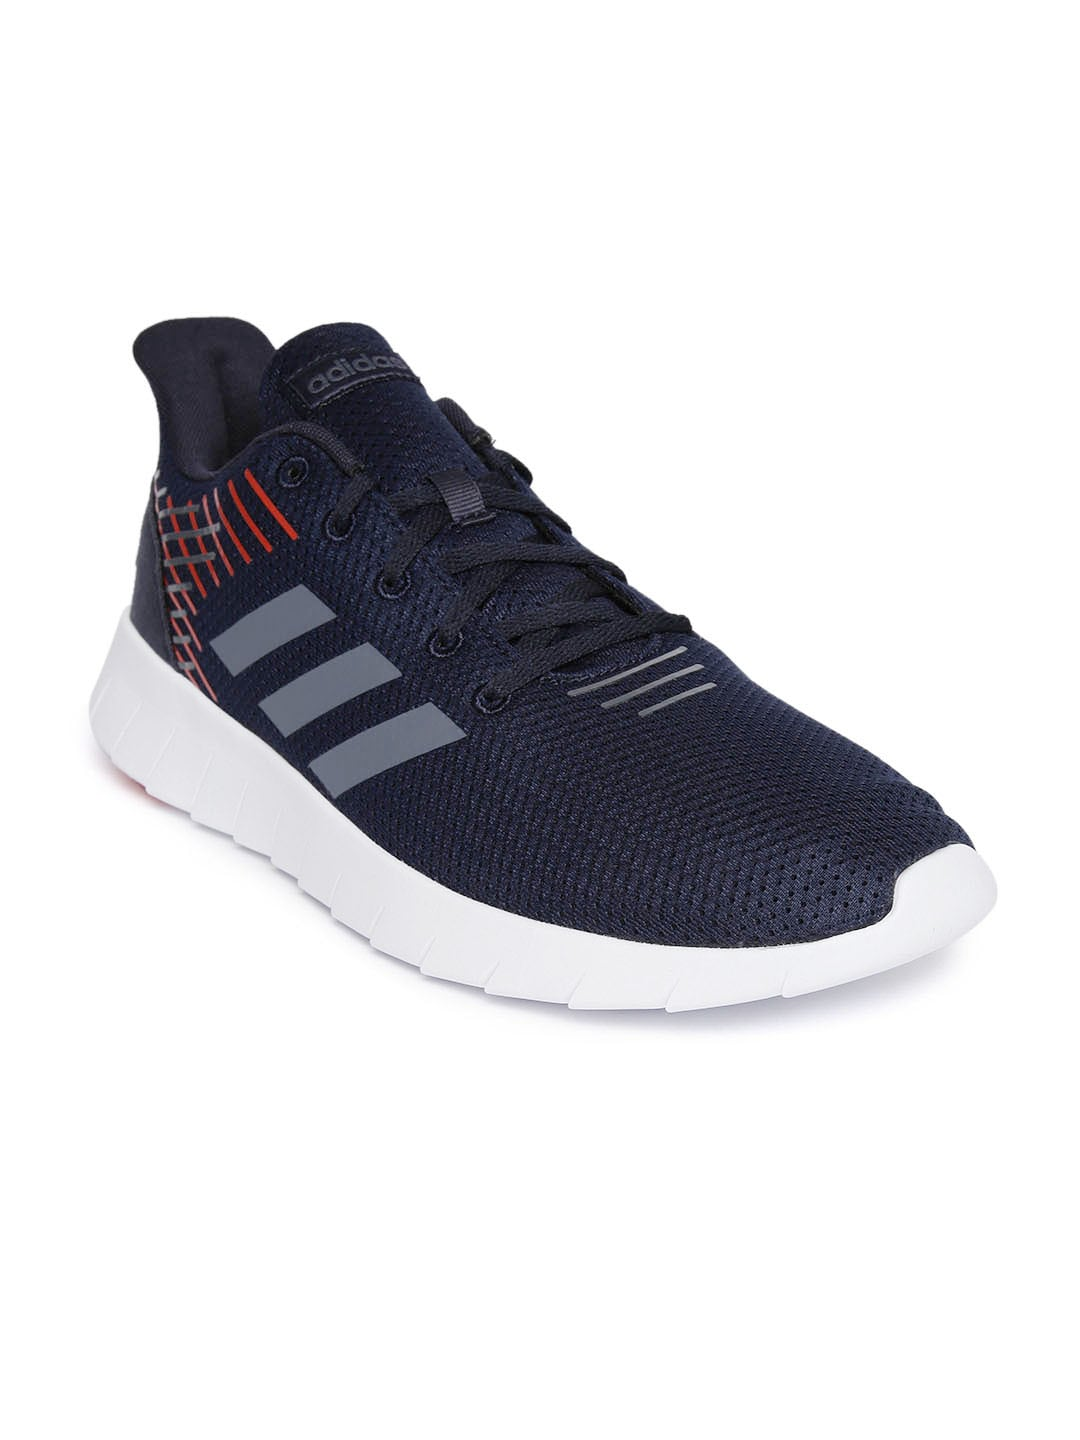 cheap for discount a6aa4 cde9e Adidas Sports Shoes - Buy Addidas Sports Shoes Online   Myntra